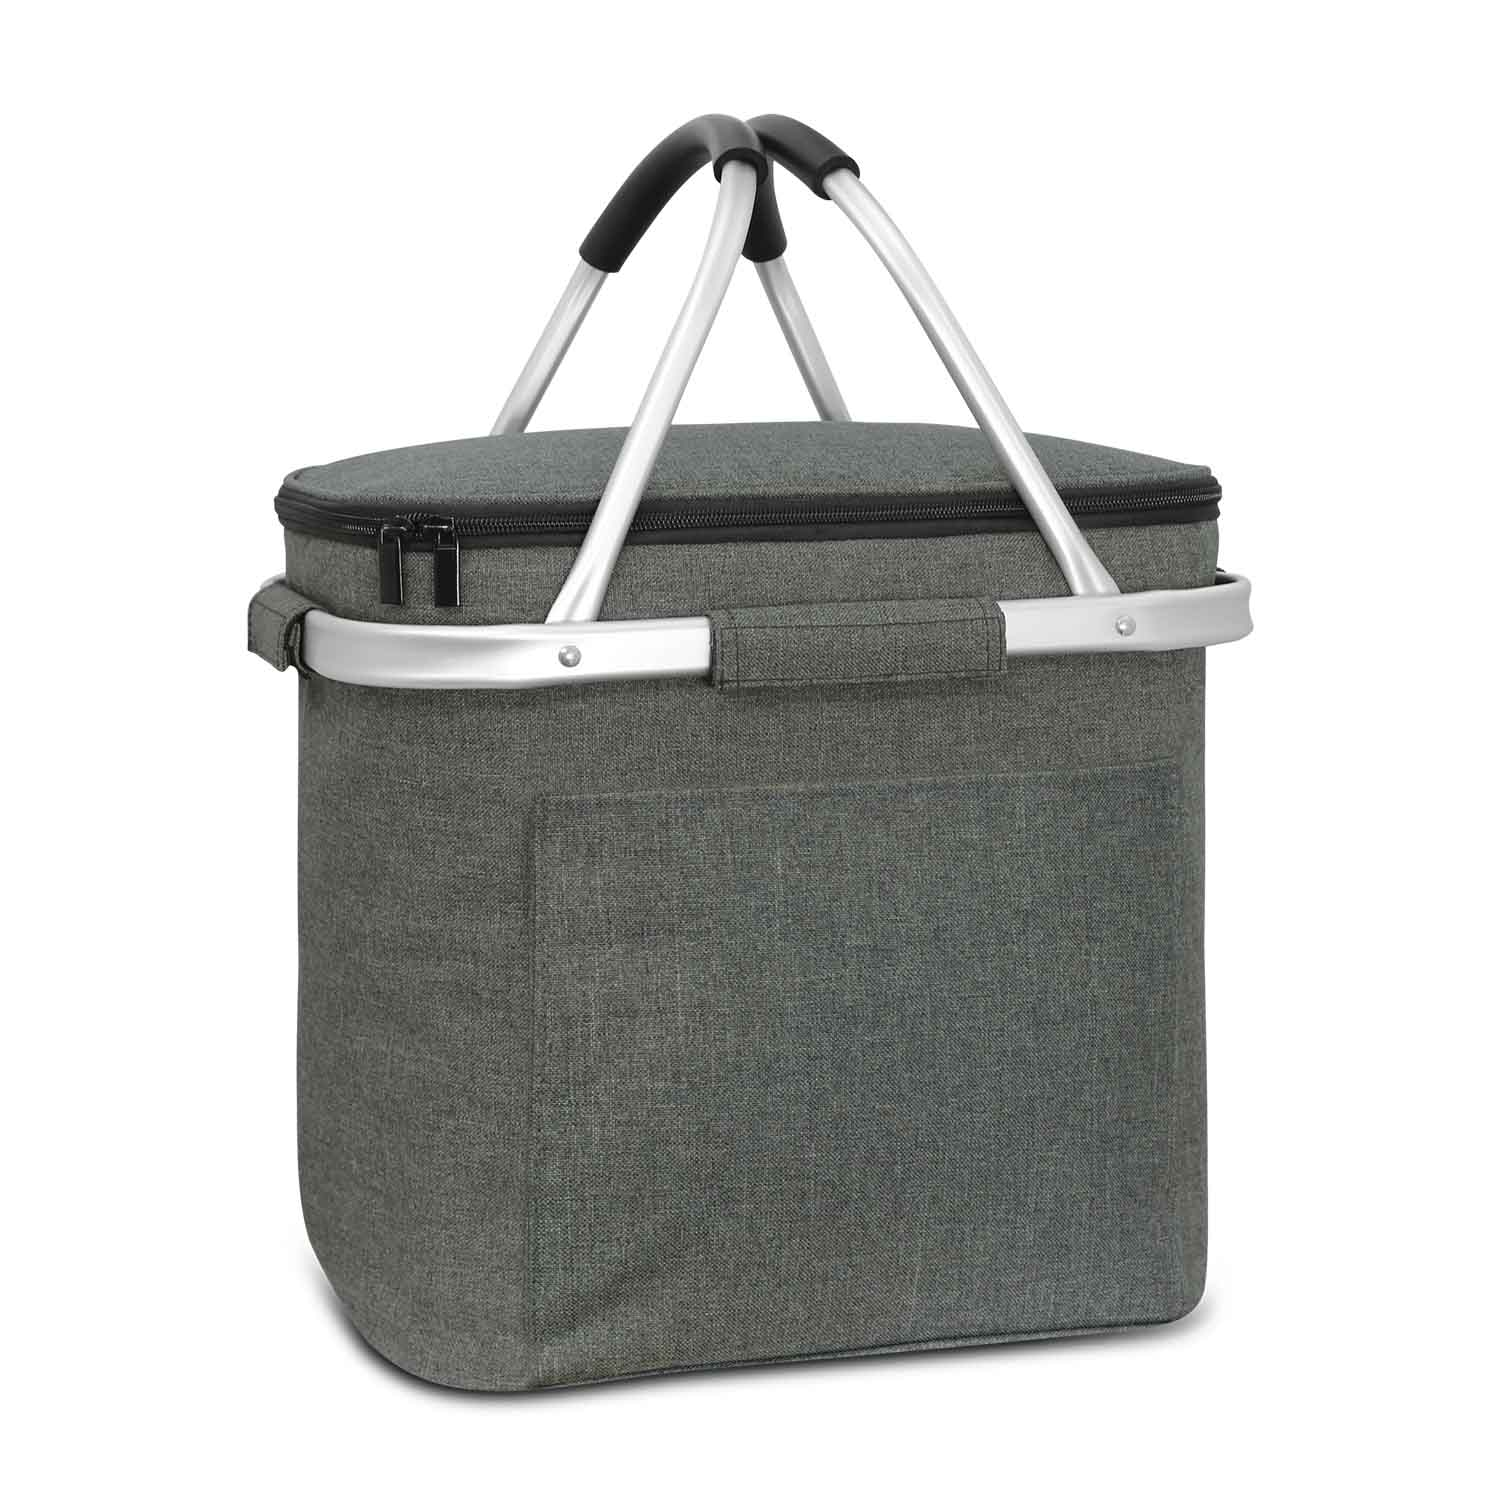 Buy Iceland Cooler Basket Bags Online in Perth